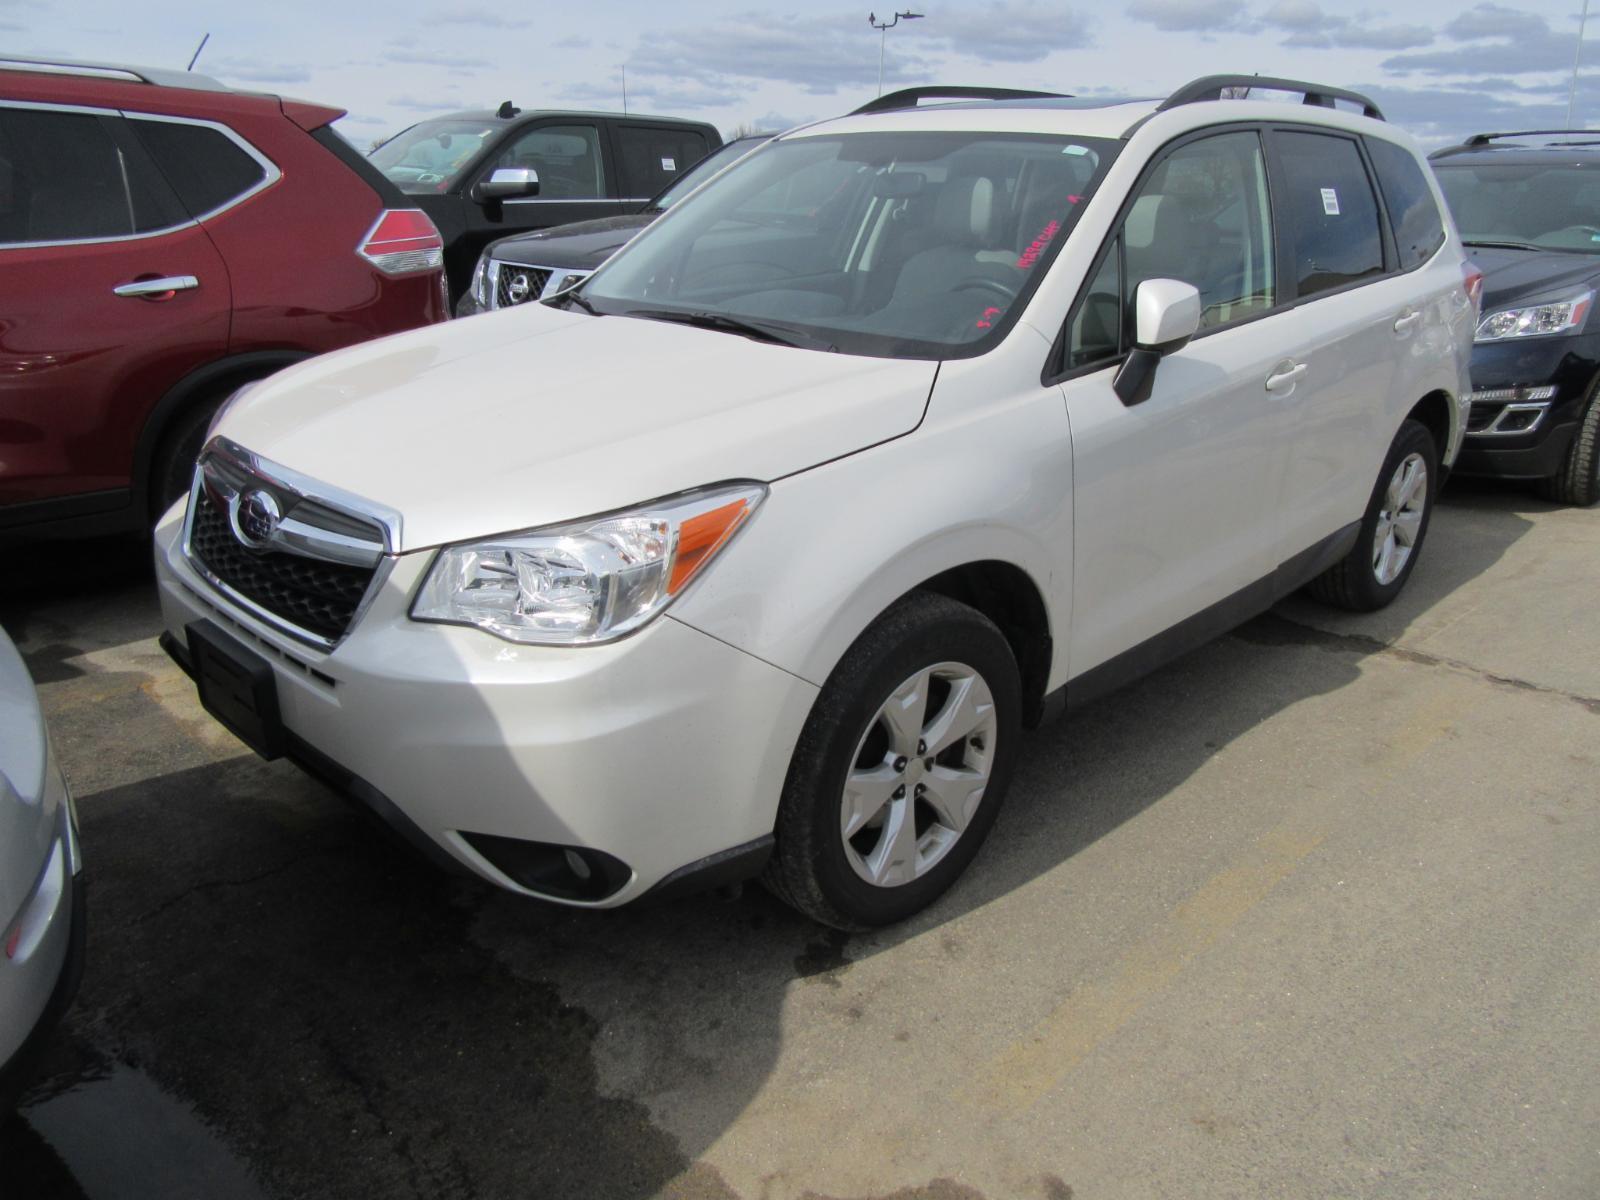 2014 Subaru Forester For Sale in Palatine IL CarGurus